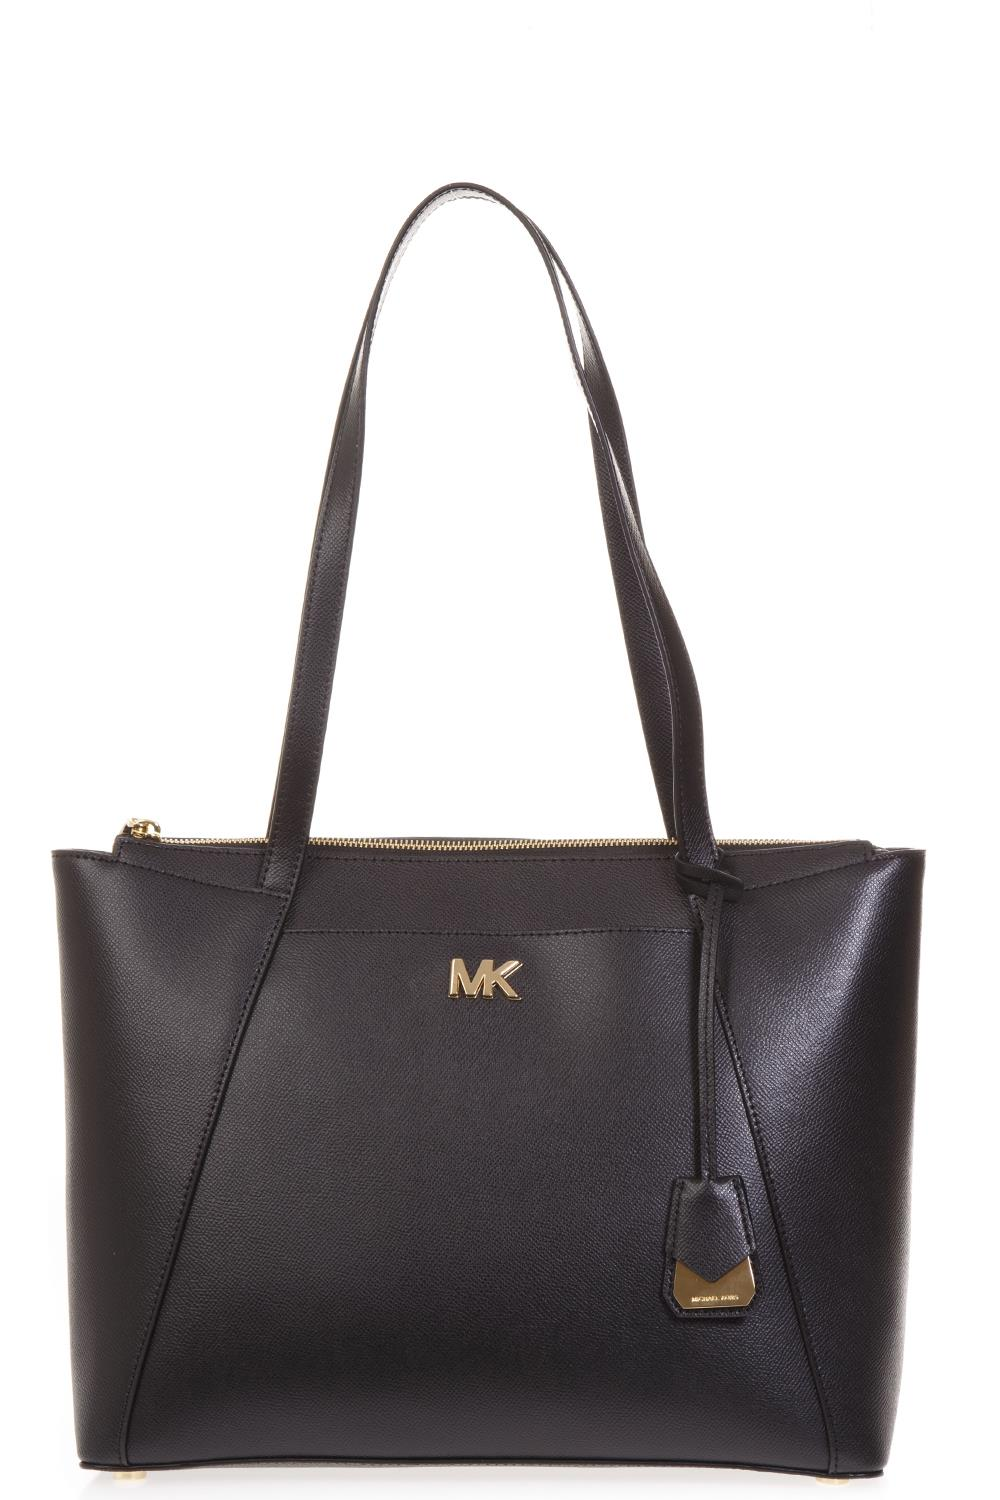 92b4beeef BLACK CROSS GRAIN LEATHER BAG SS 2019 - MICHAEL MICHAEL KORS - Boutique  Galiano